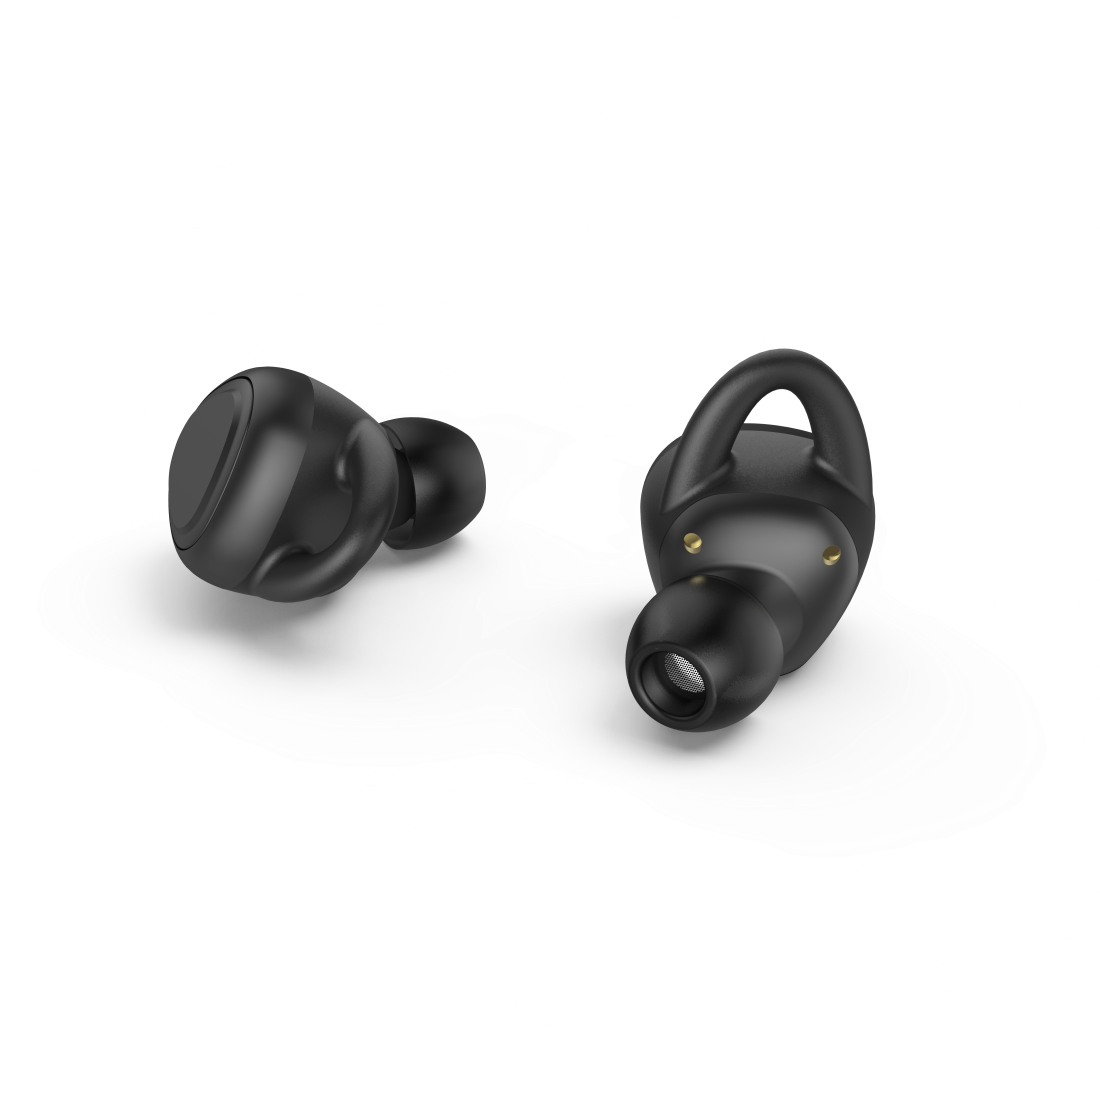 abx3 High-Res Image 3 - Hama, Căști Bluetooth® LiberoBuds, In-Ear, Wireless, Statie încărcare